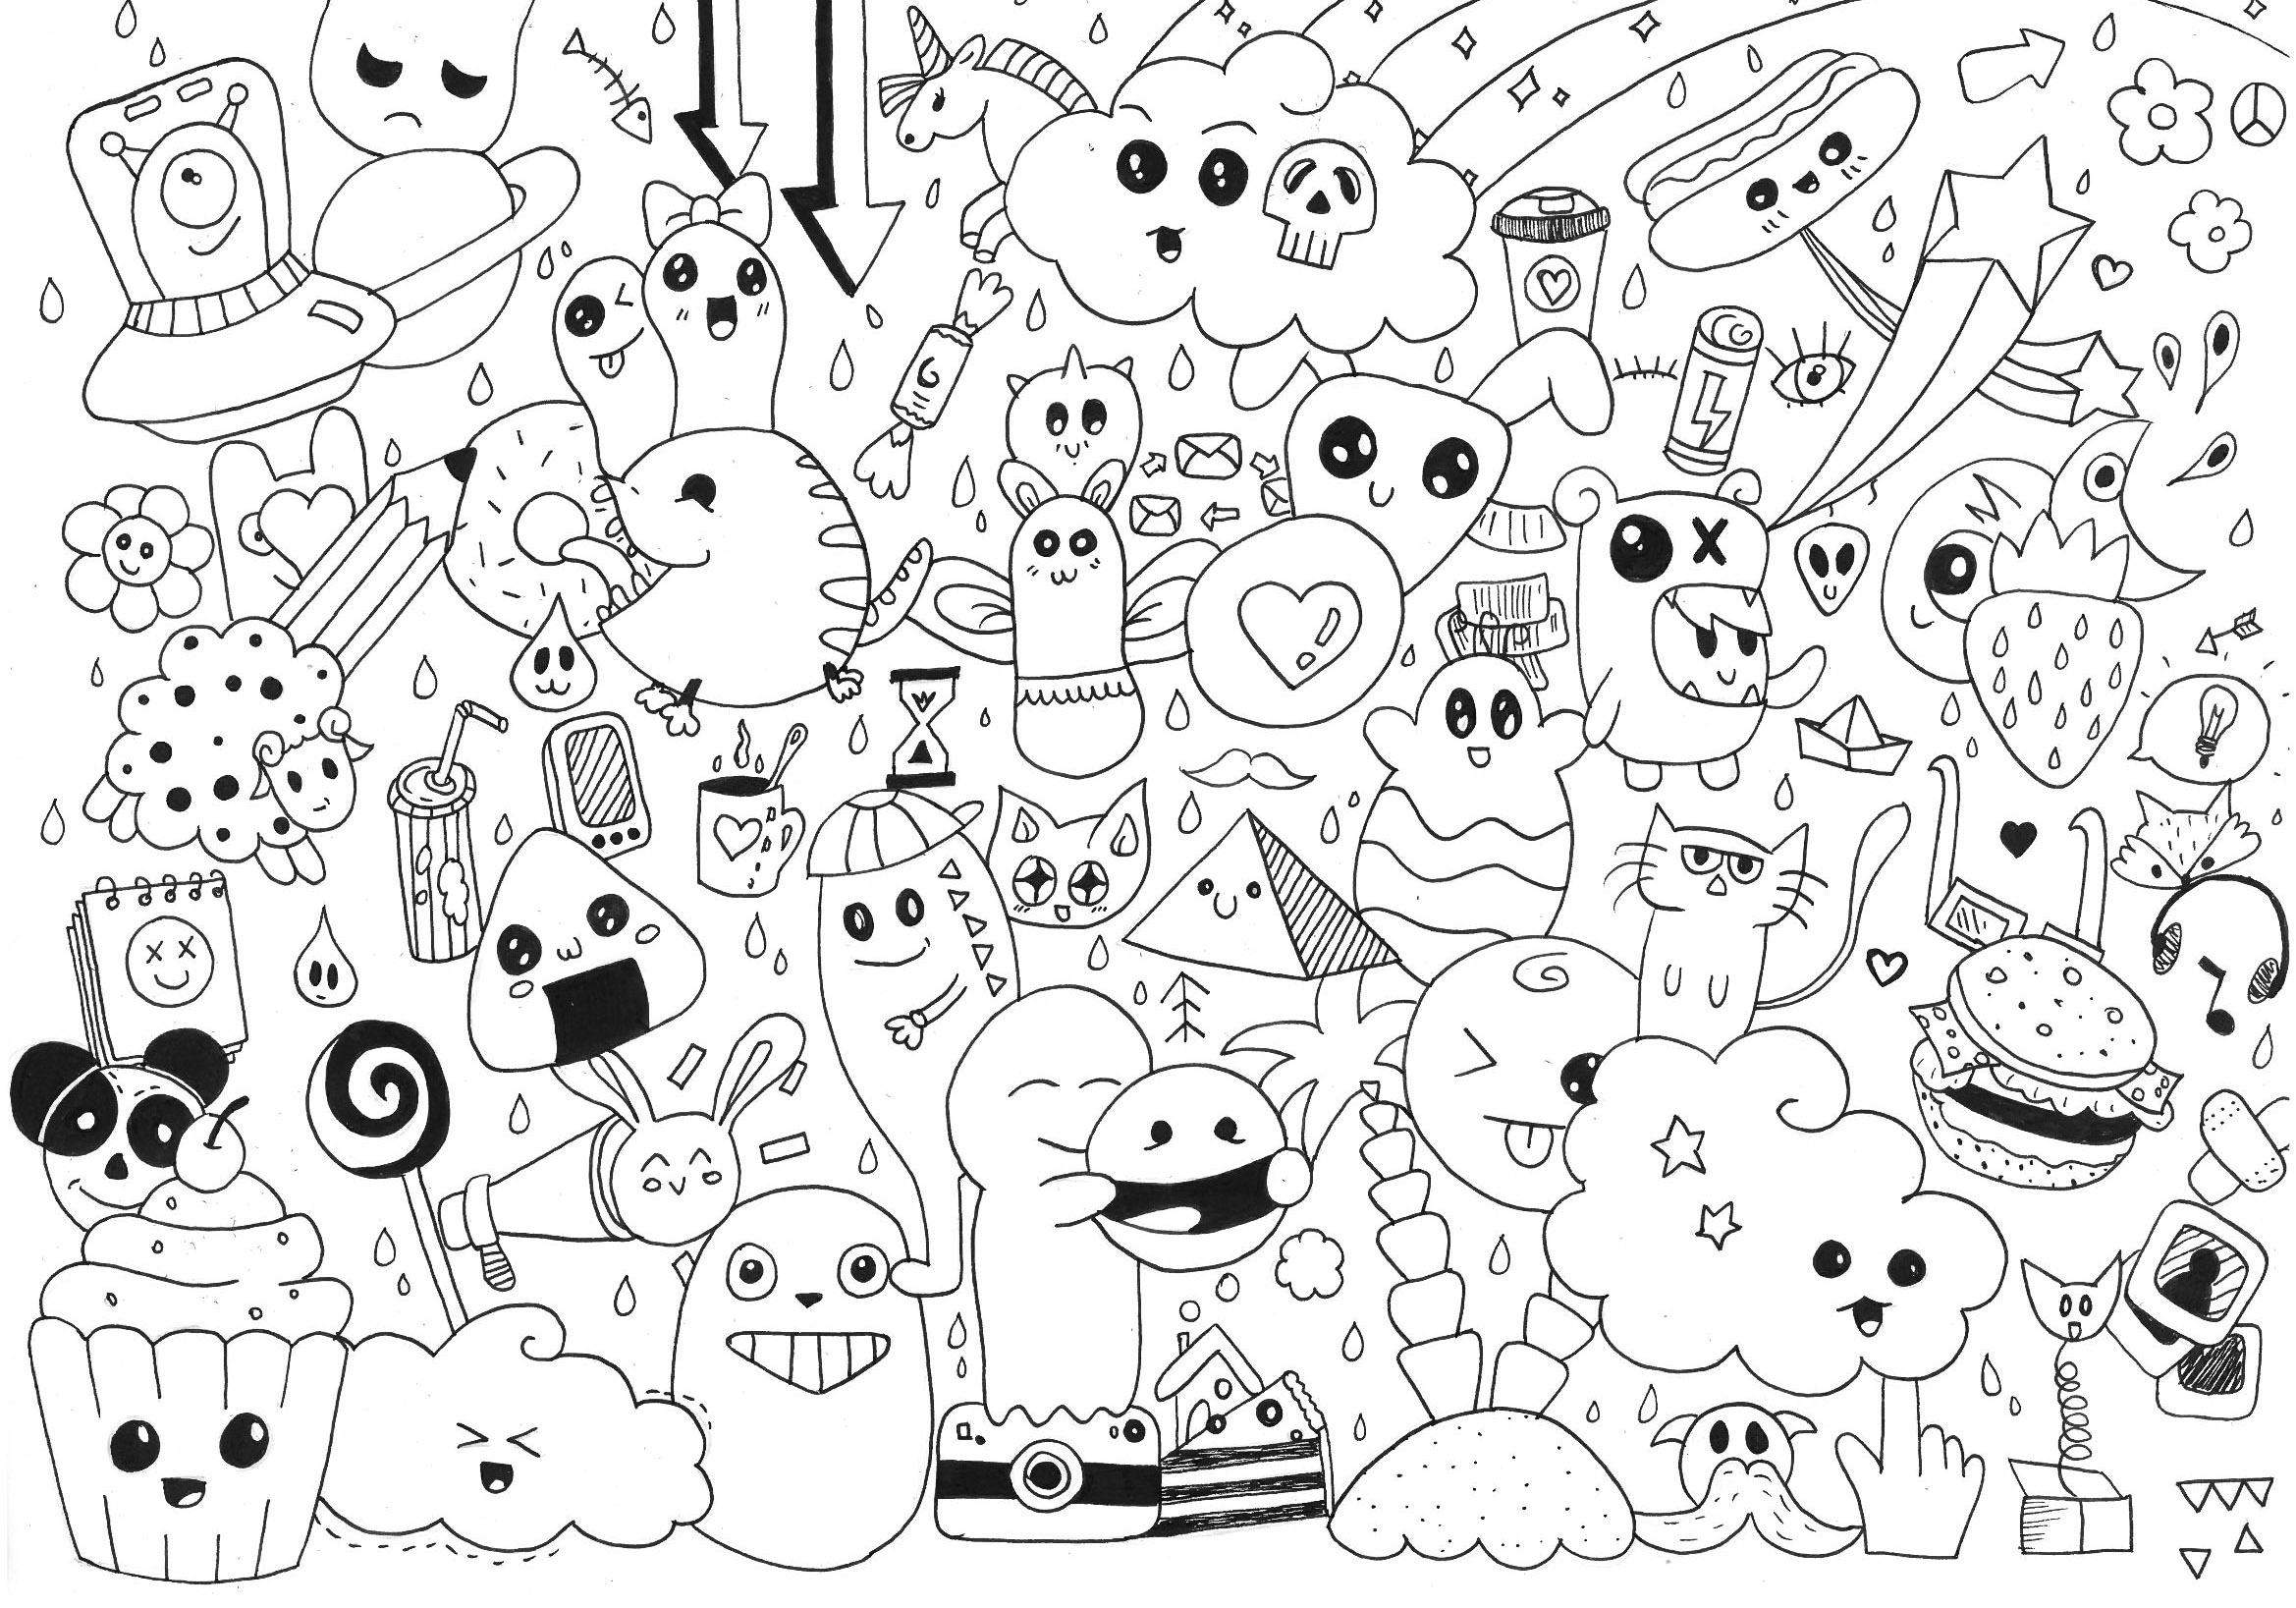 Many small Kawaii characters, very happy to be here together !